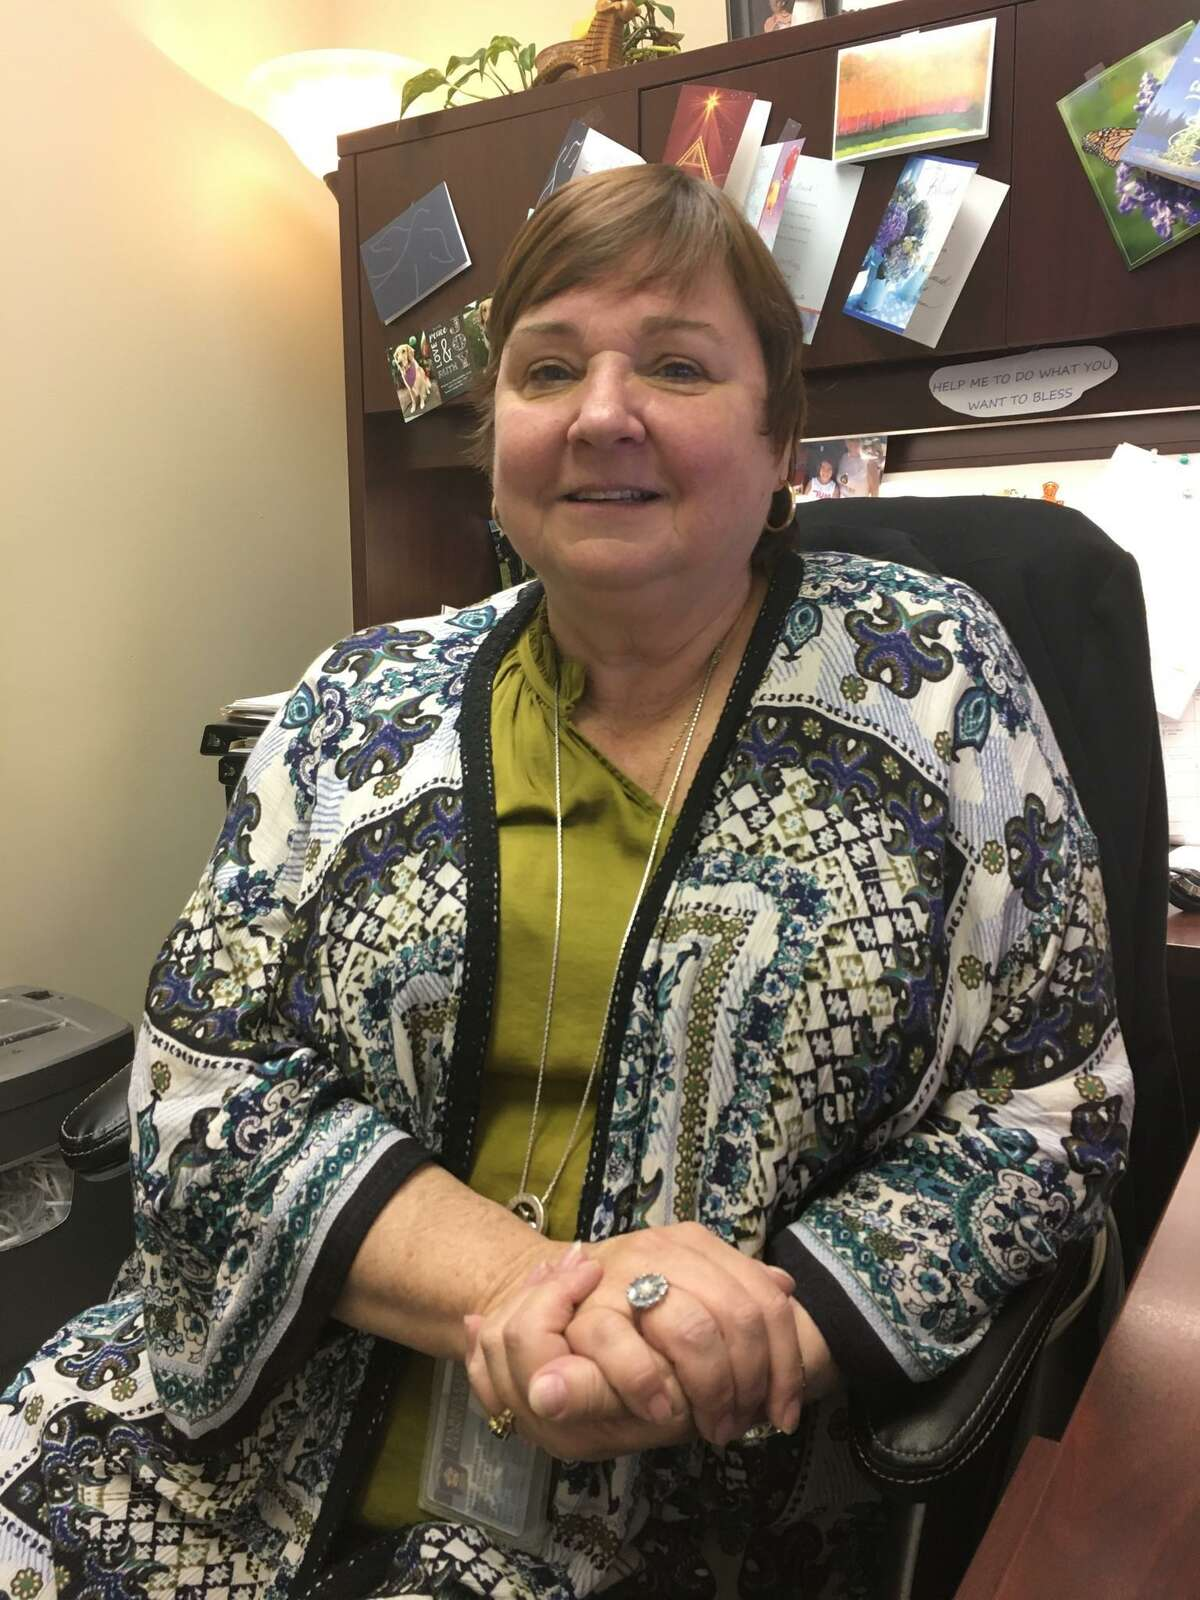 Barbara McInnis has served as the Victim Assistance Liaison coordinator for Harris County Precinct 5 Constable Ted Heap for two years.